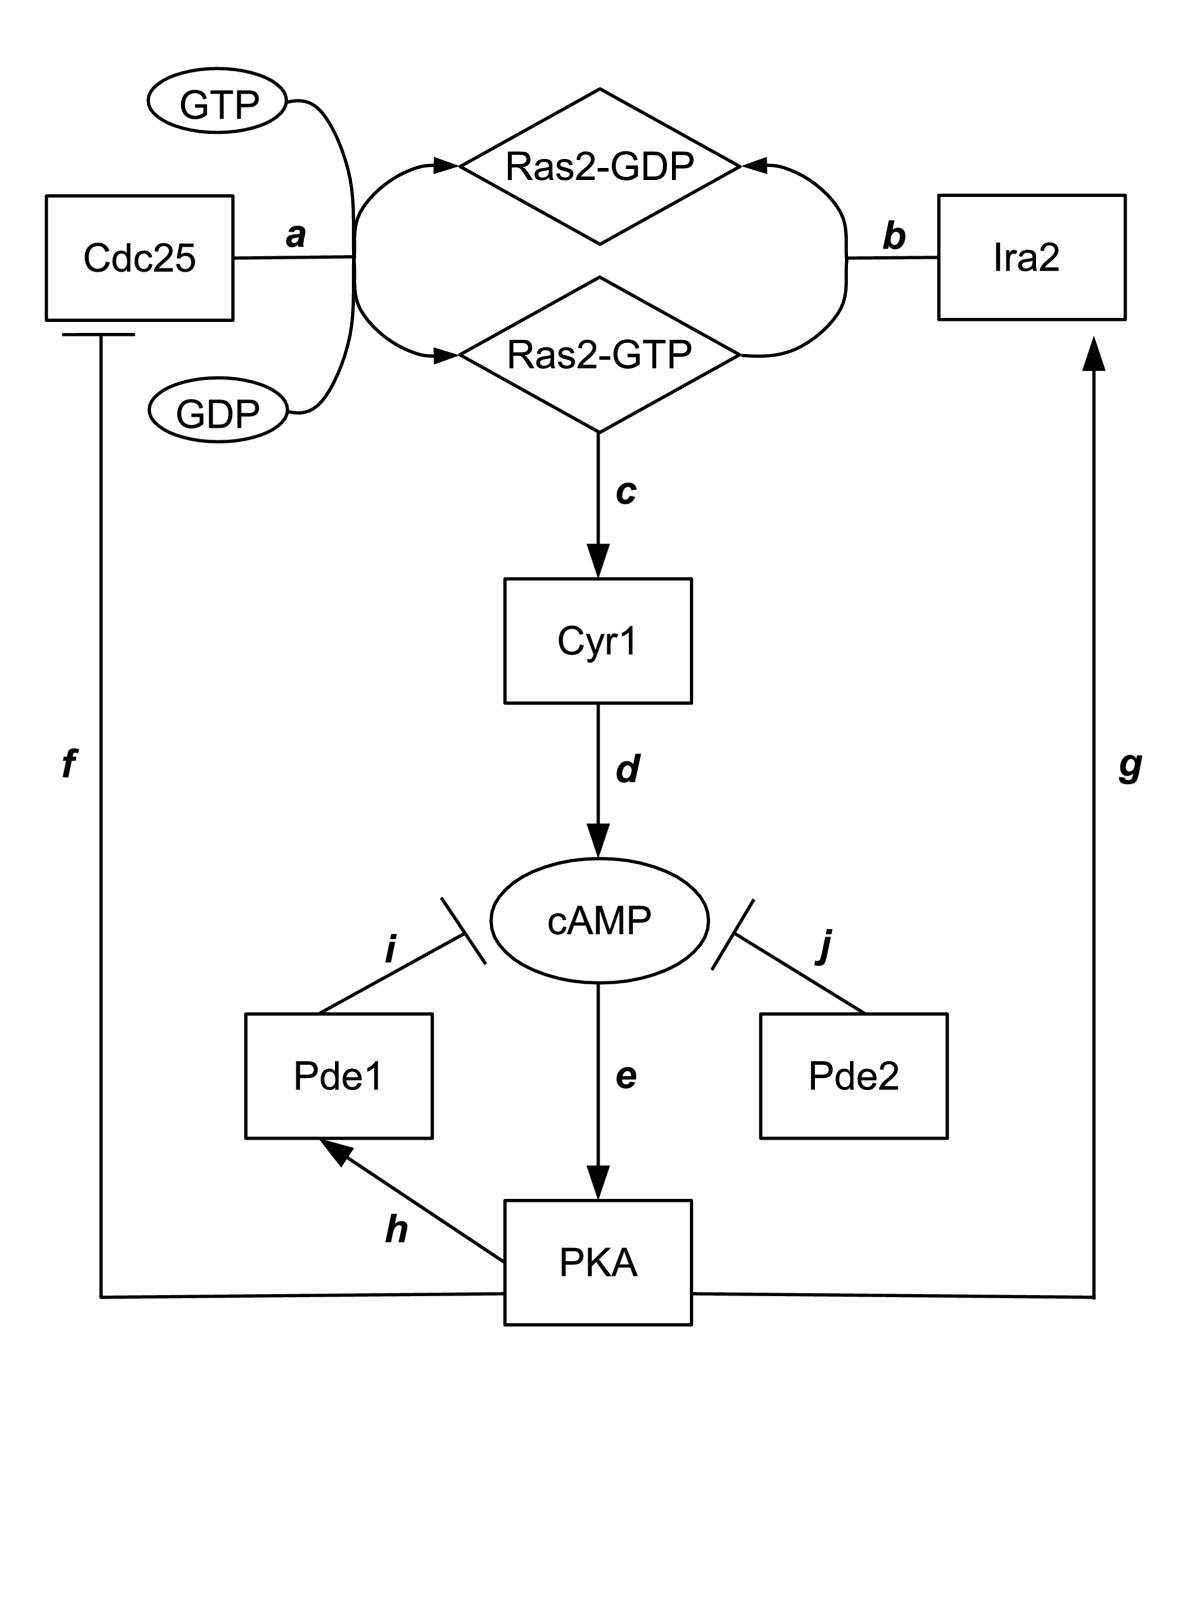 http://static-content.springer.com/image/art%3A10.1186%2F1687-4153-2012-10/MediaObjects/13637_2012_Article_15_Fig1_HTML.jpg